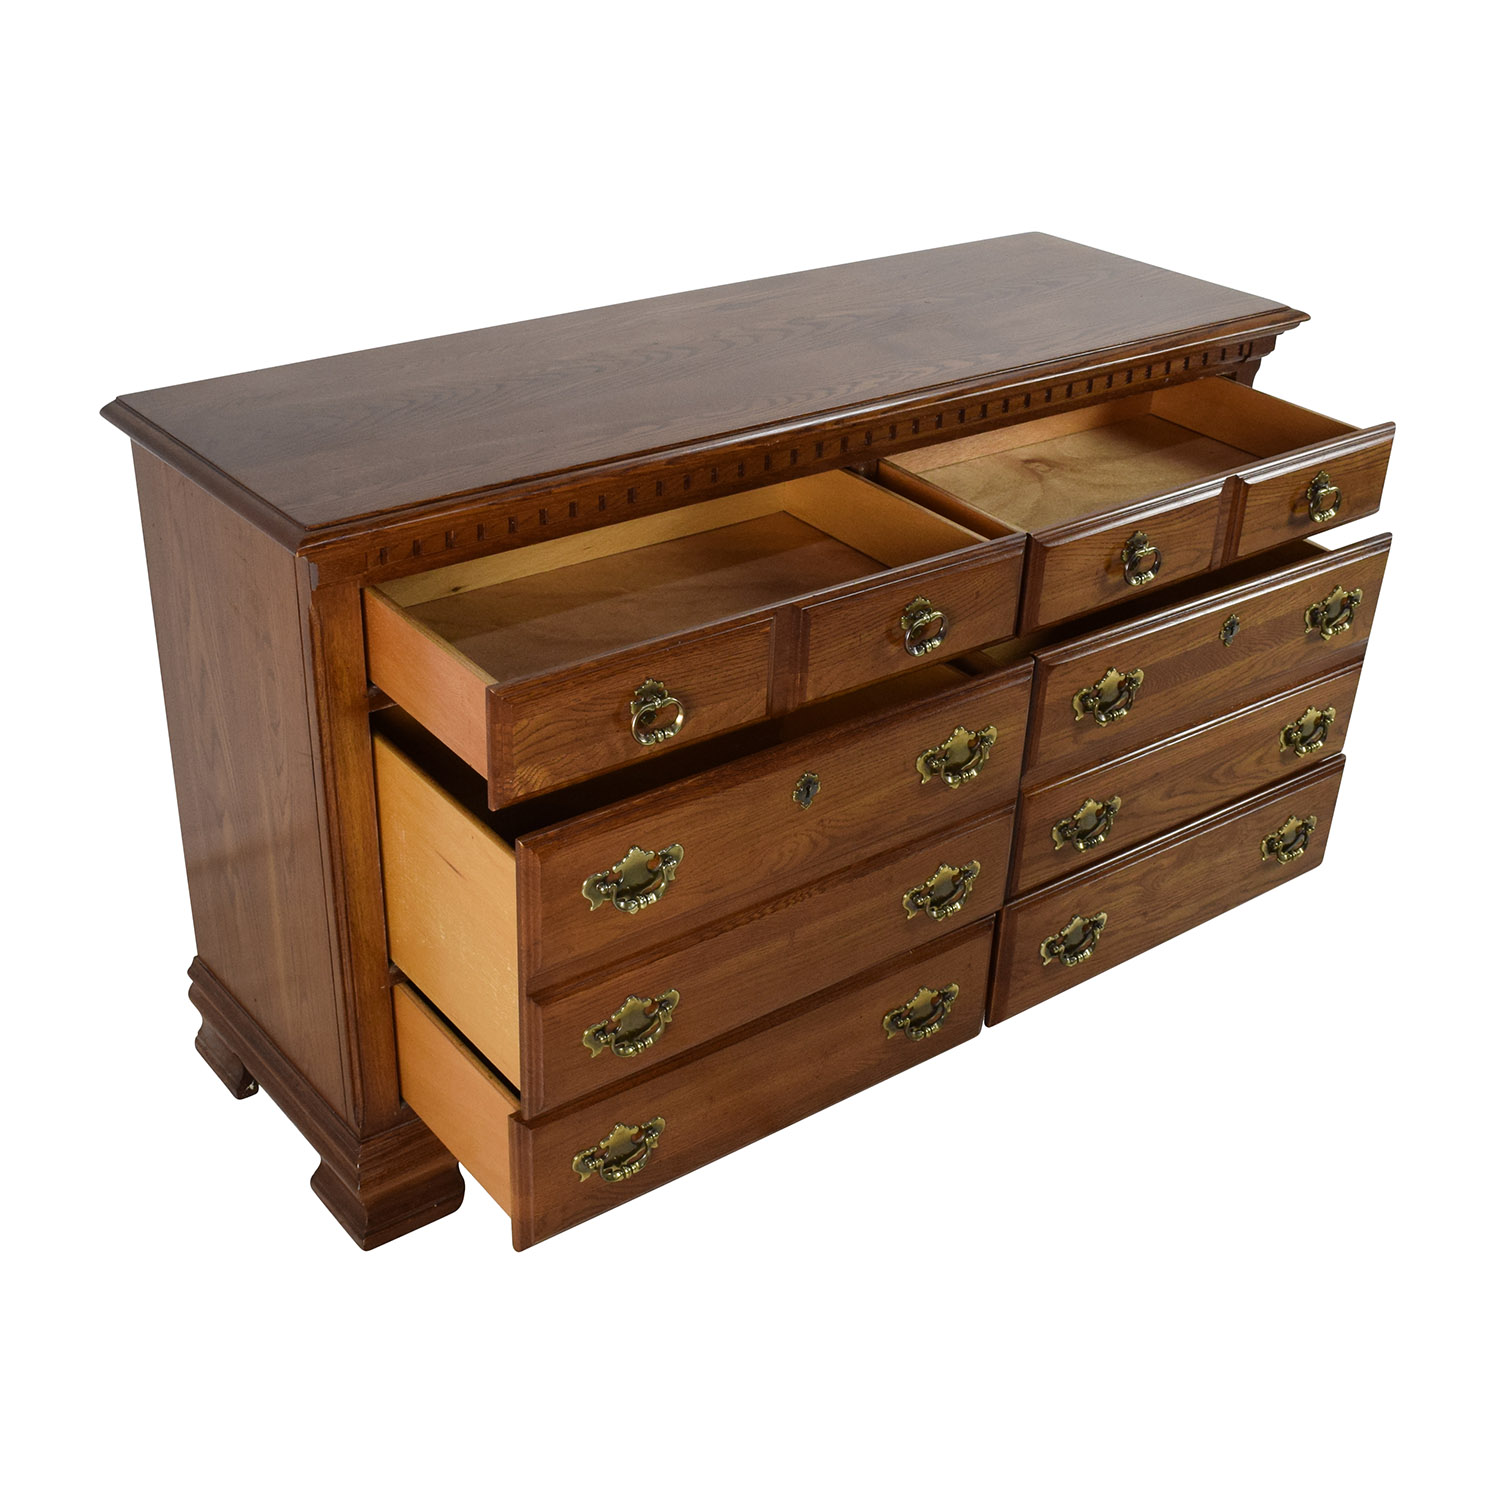 64 off kincaid furniture kincaid furniture solid wood for Solid wood furniture